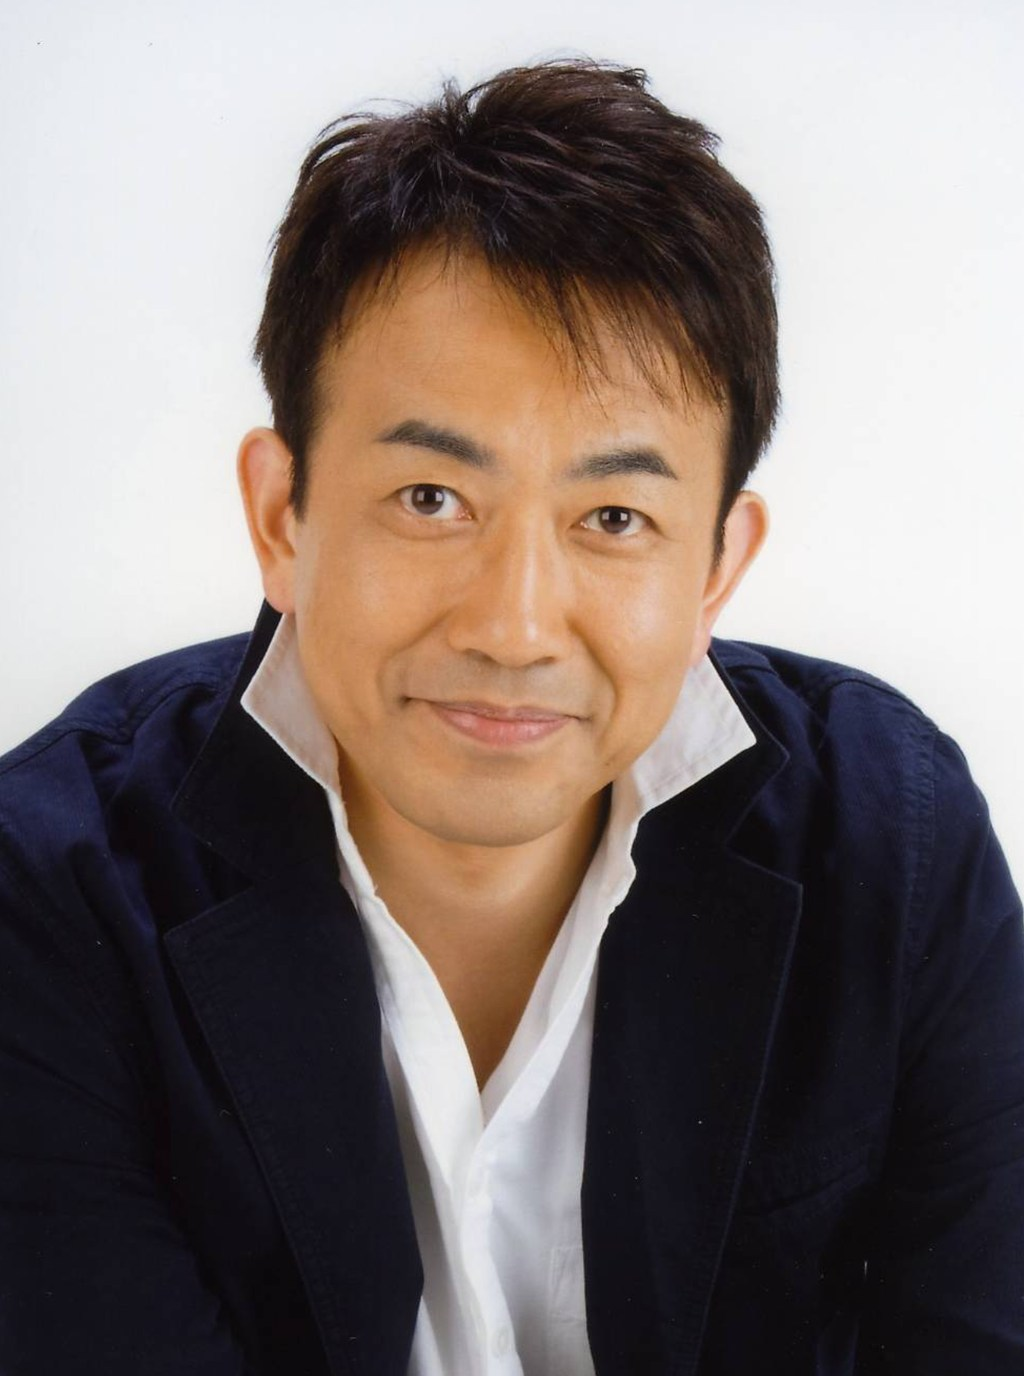 Japanese Voice Actor Seki Toshihiko Tests Positive for COVID-19